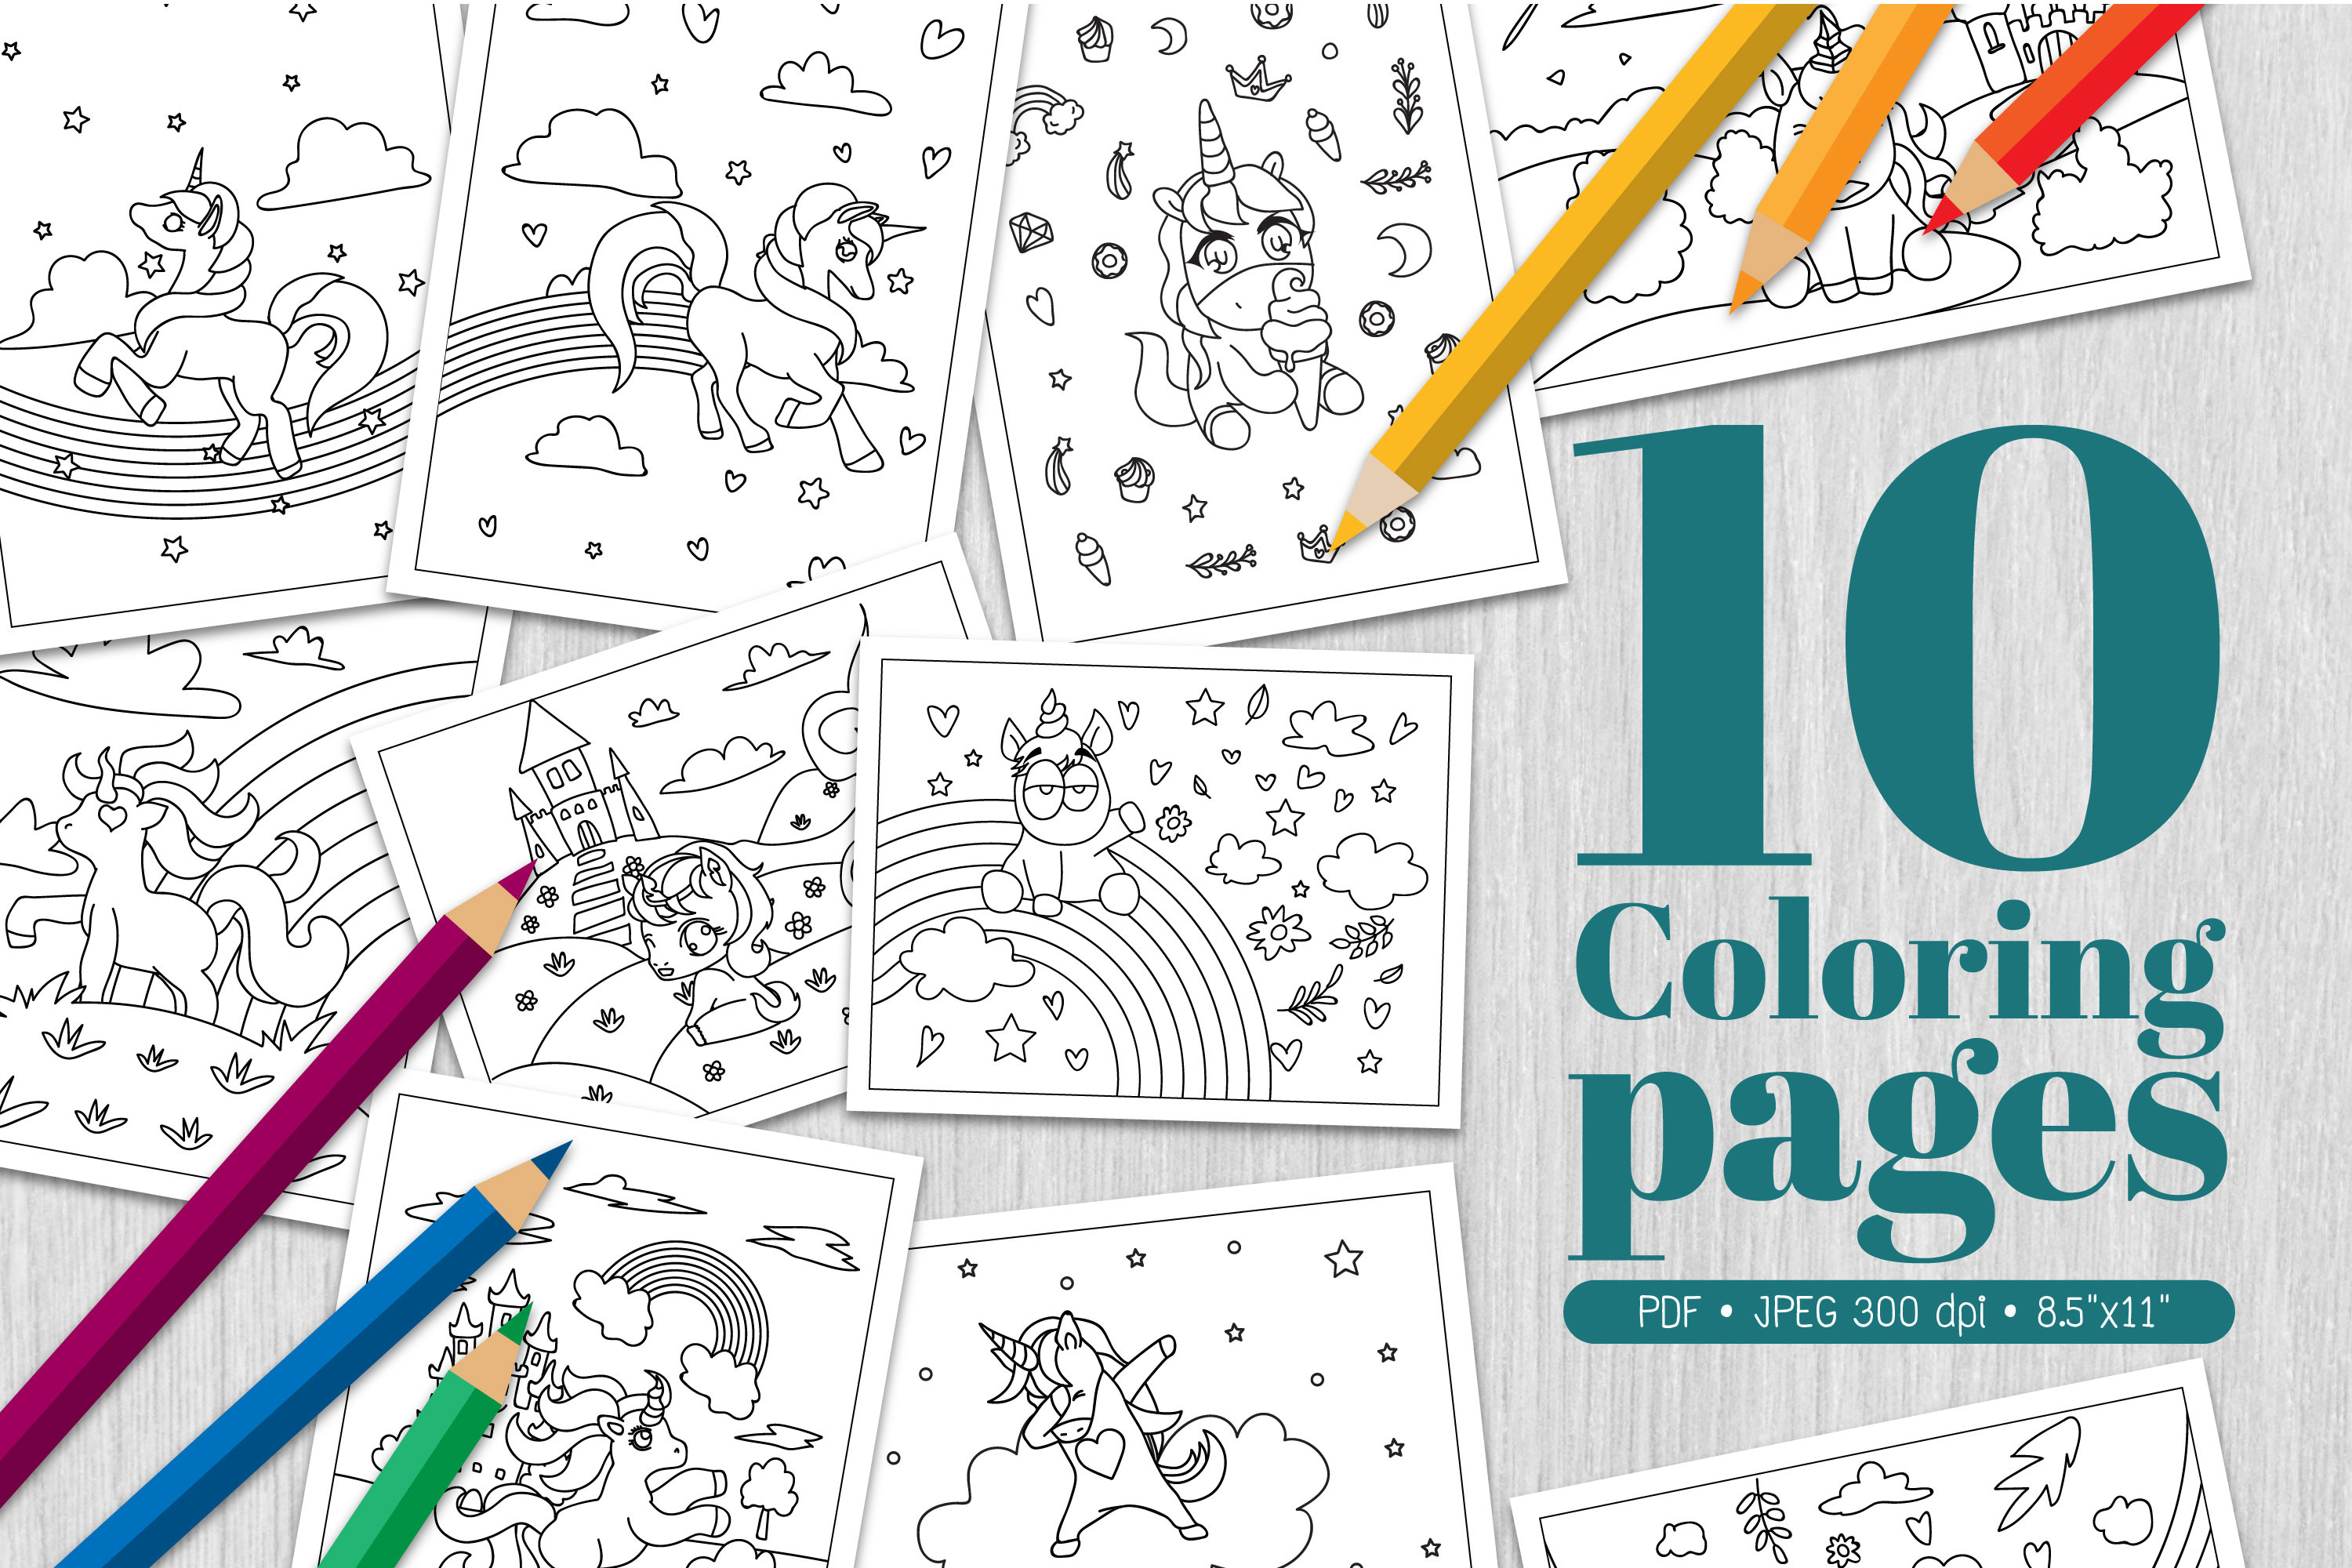 Unicorn Coloring Page Graphic By Euphoria Design Creative Fabrica